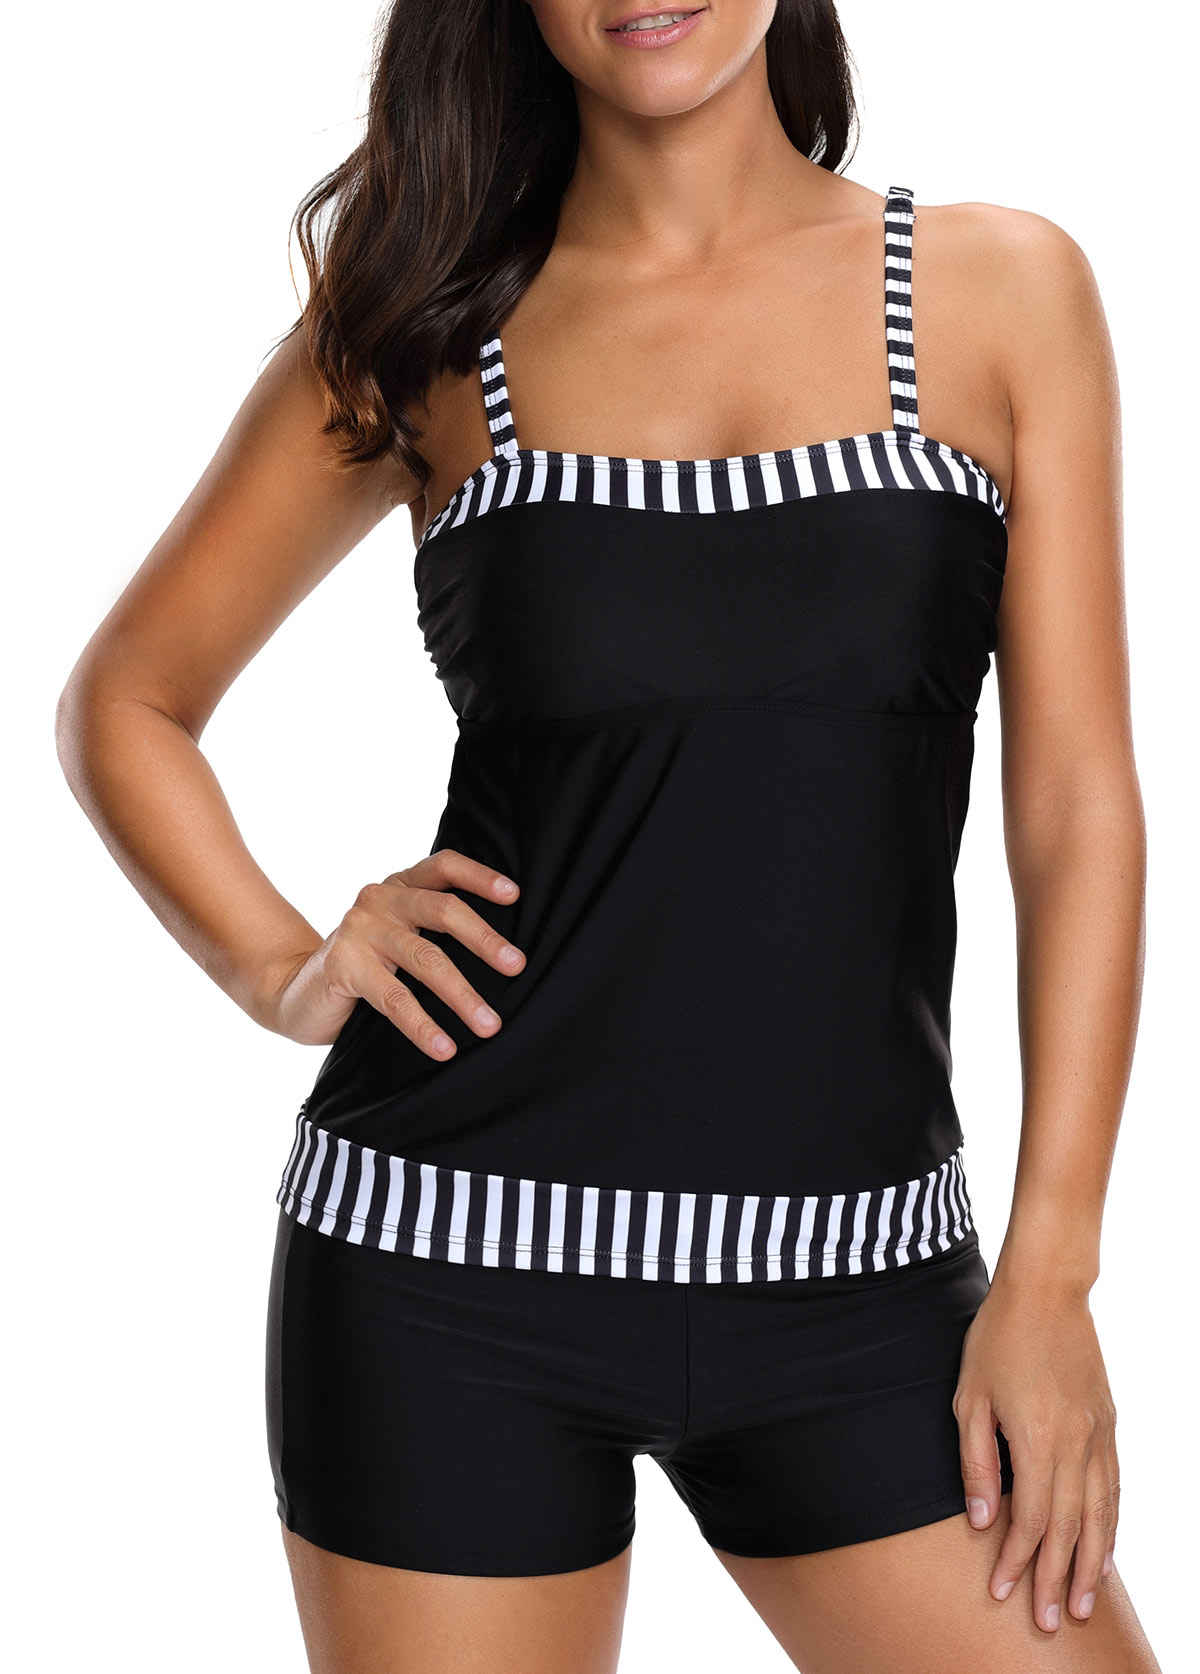 Monochrome Stripe Spaghetti Strap Tankini Top and Shorts